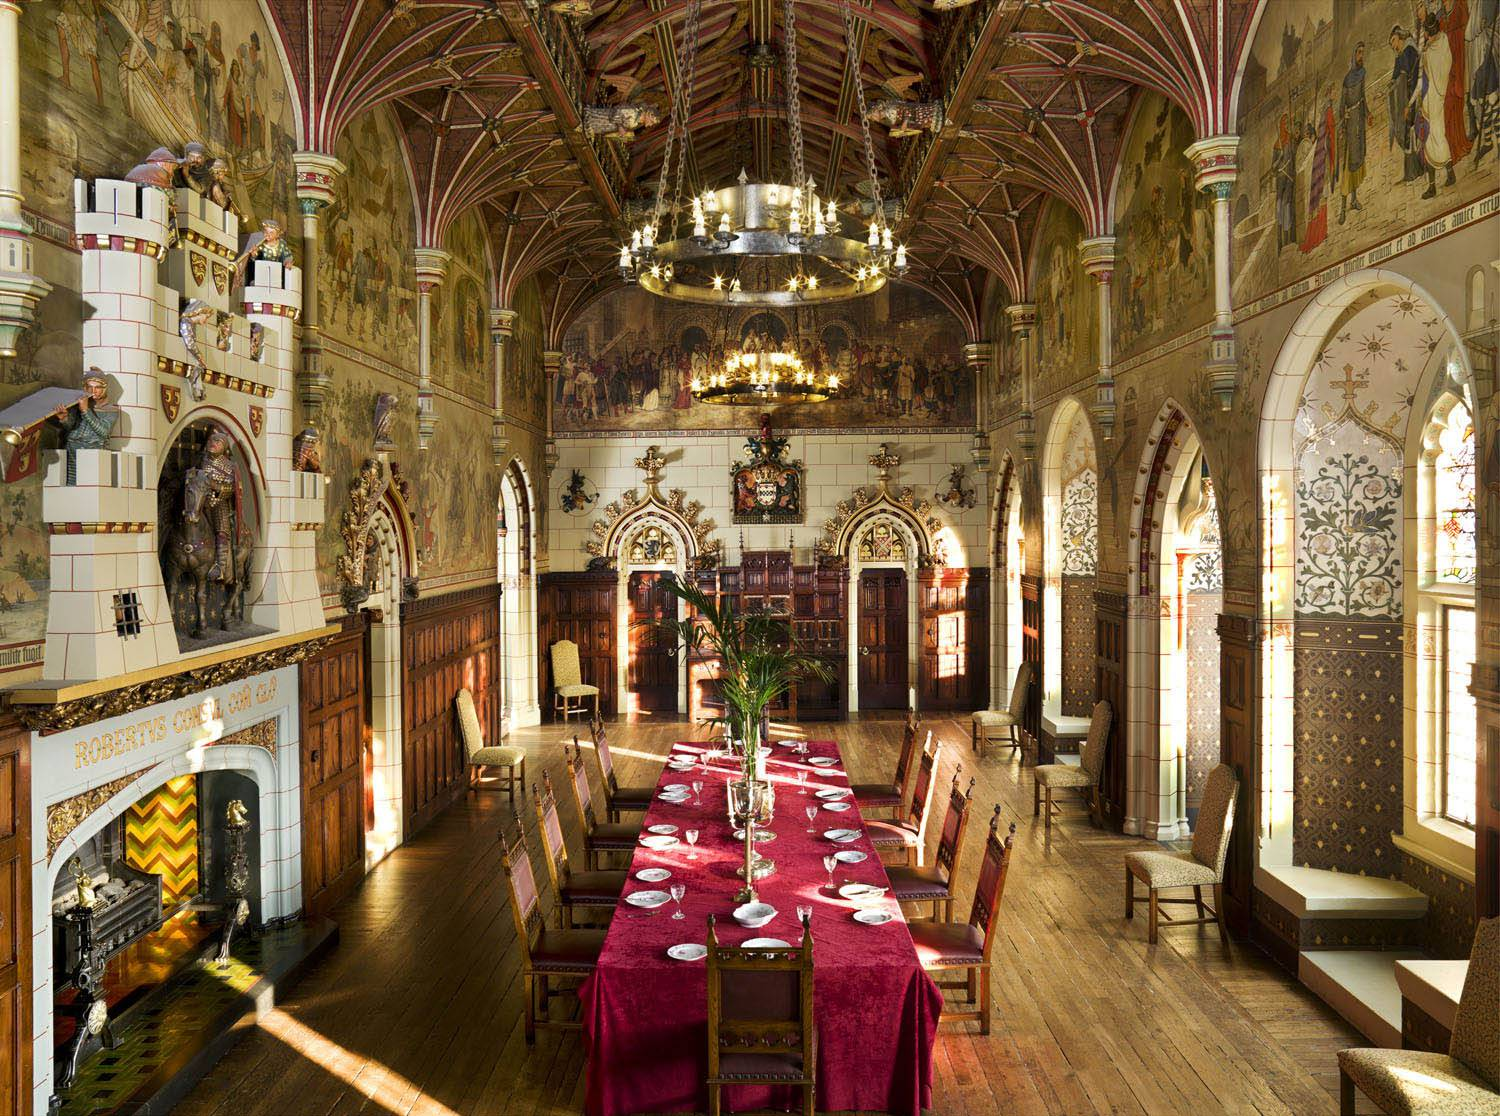 Wales Corporate Travel Incentives, Cardiff Castle Banqueting Hall, Cardiff, Wales